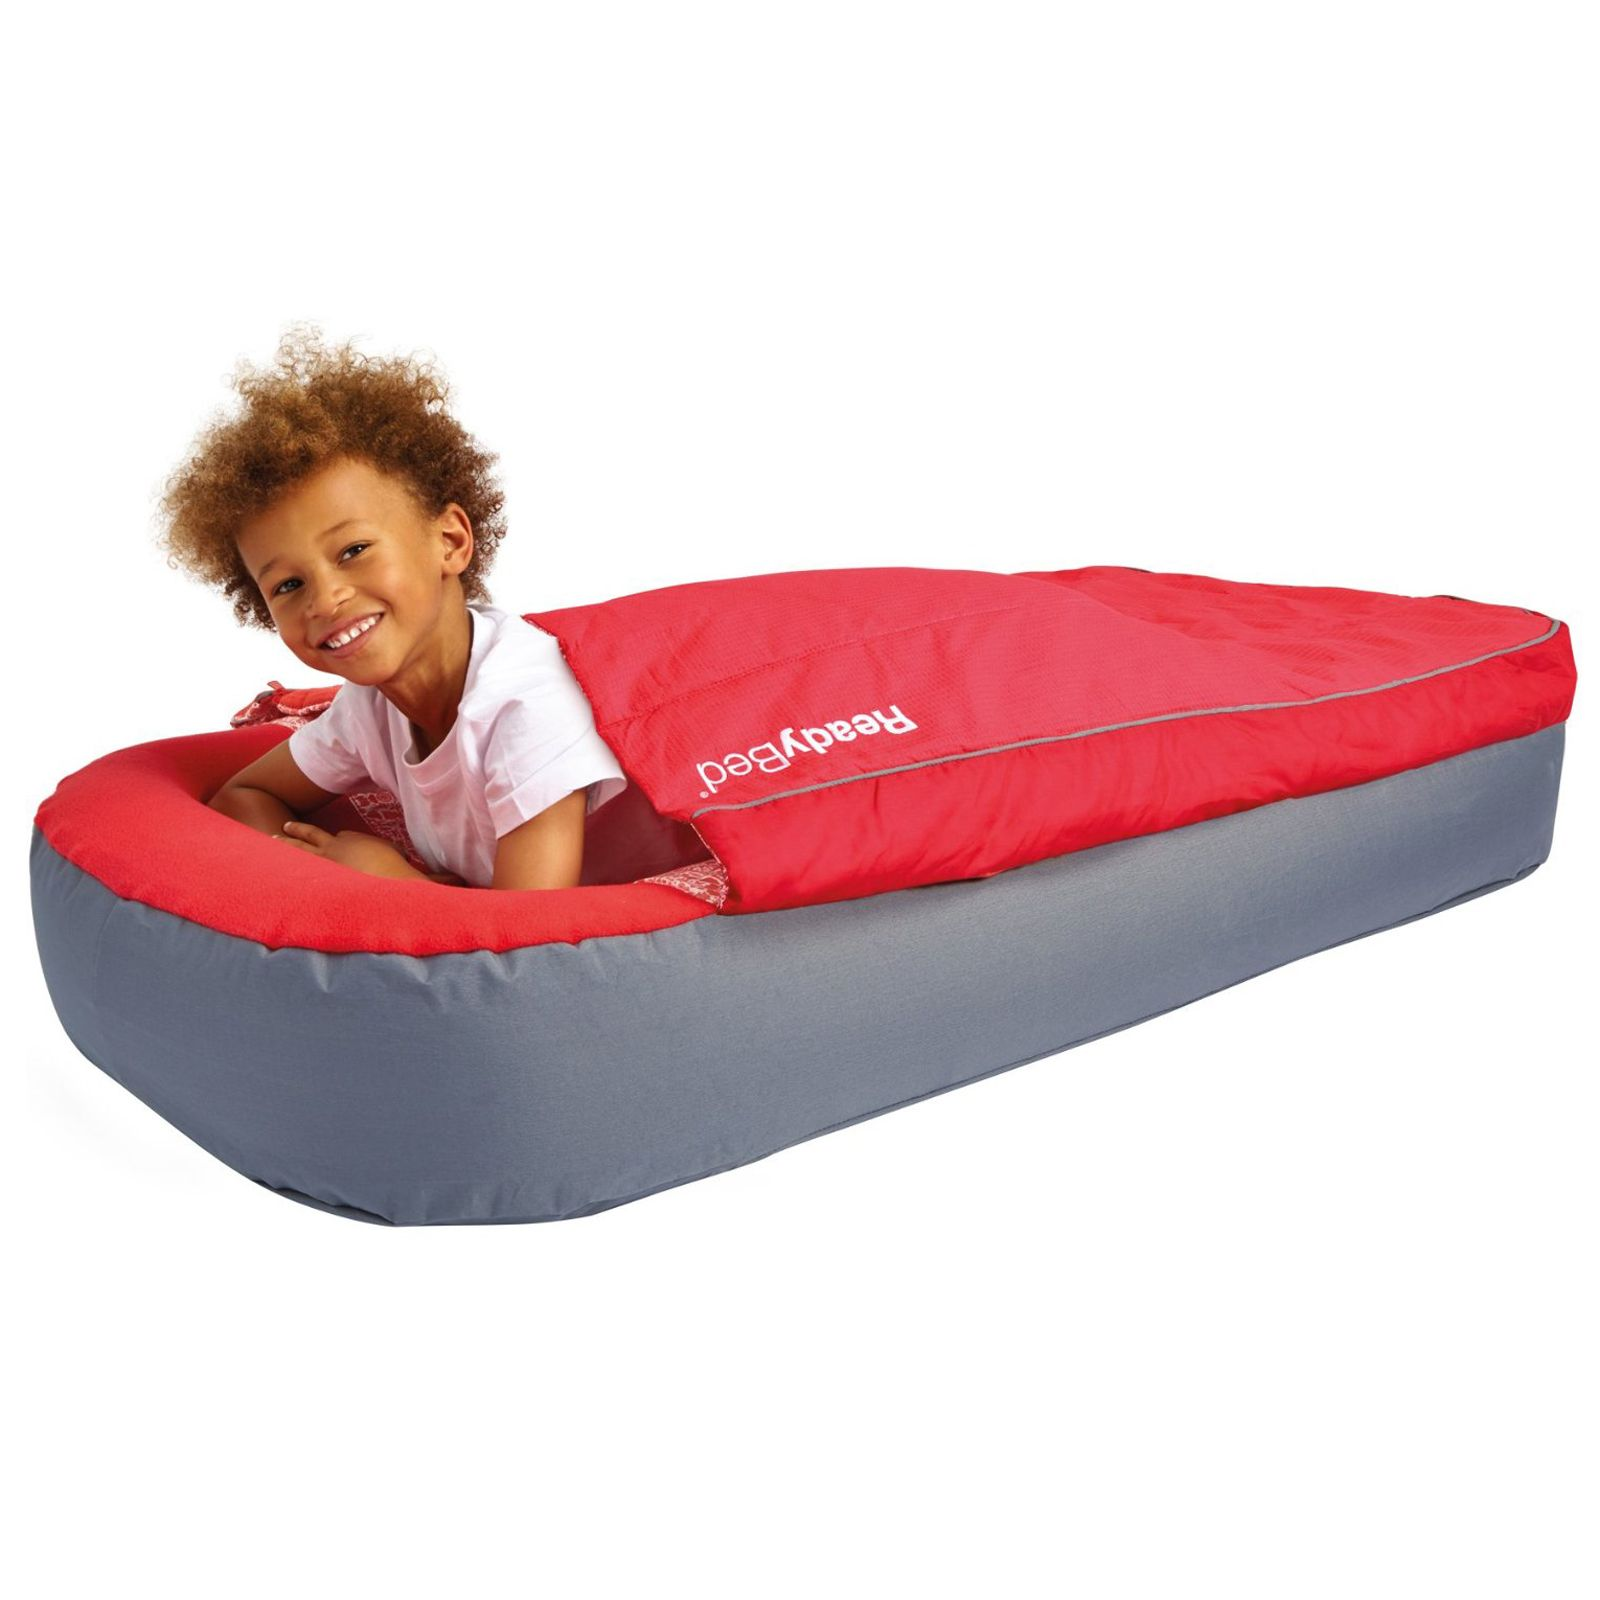 Deluxe Junior ReadyBed - Inflatable Kids Air Bed and ...